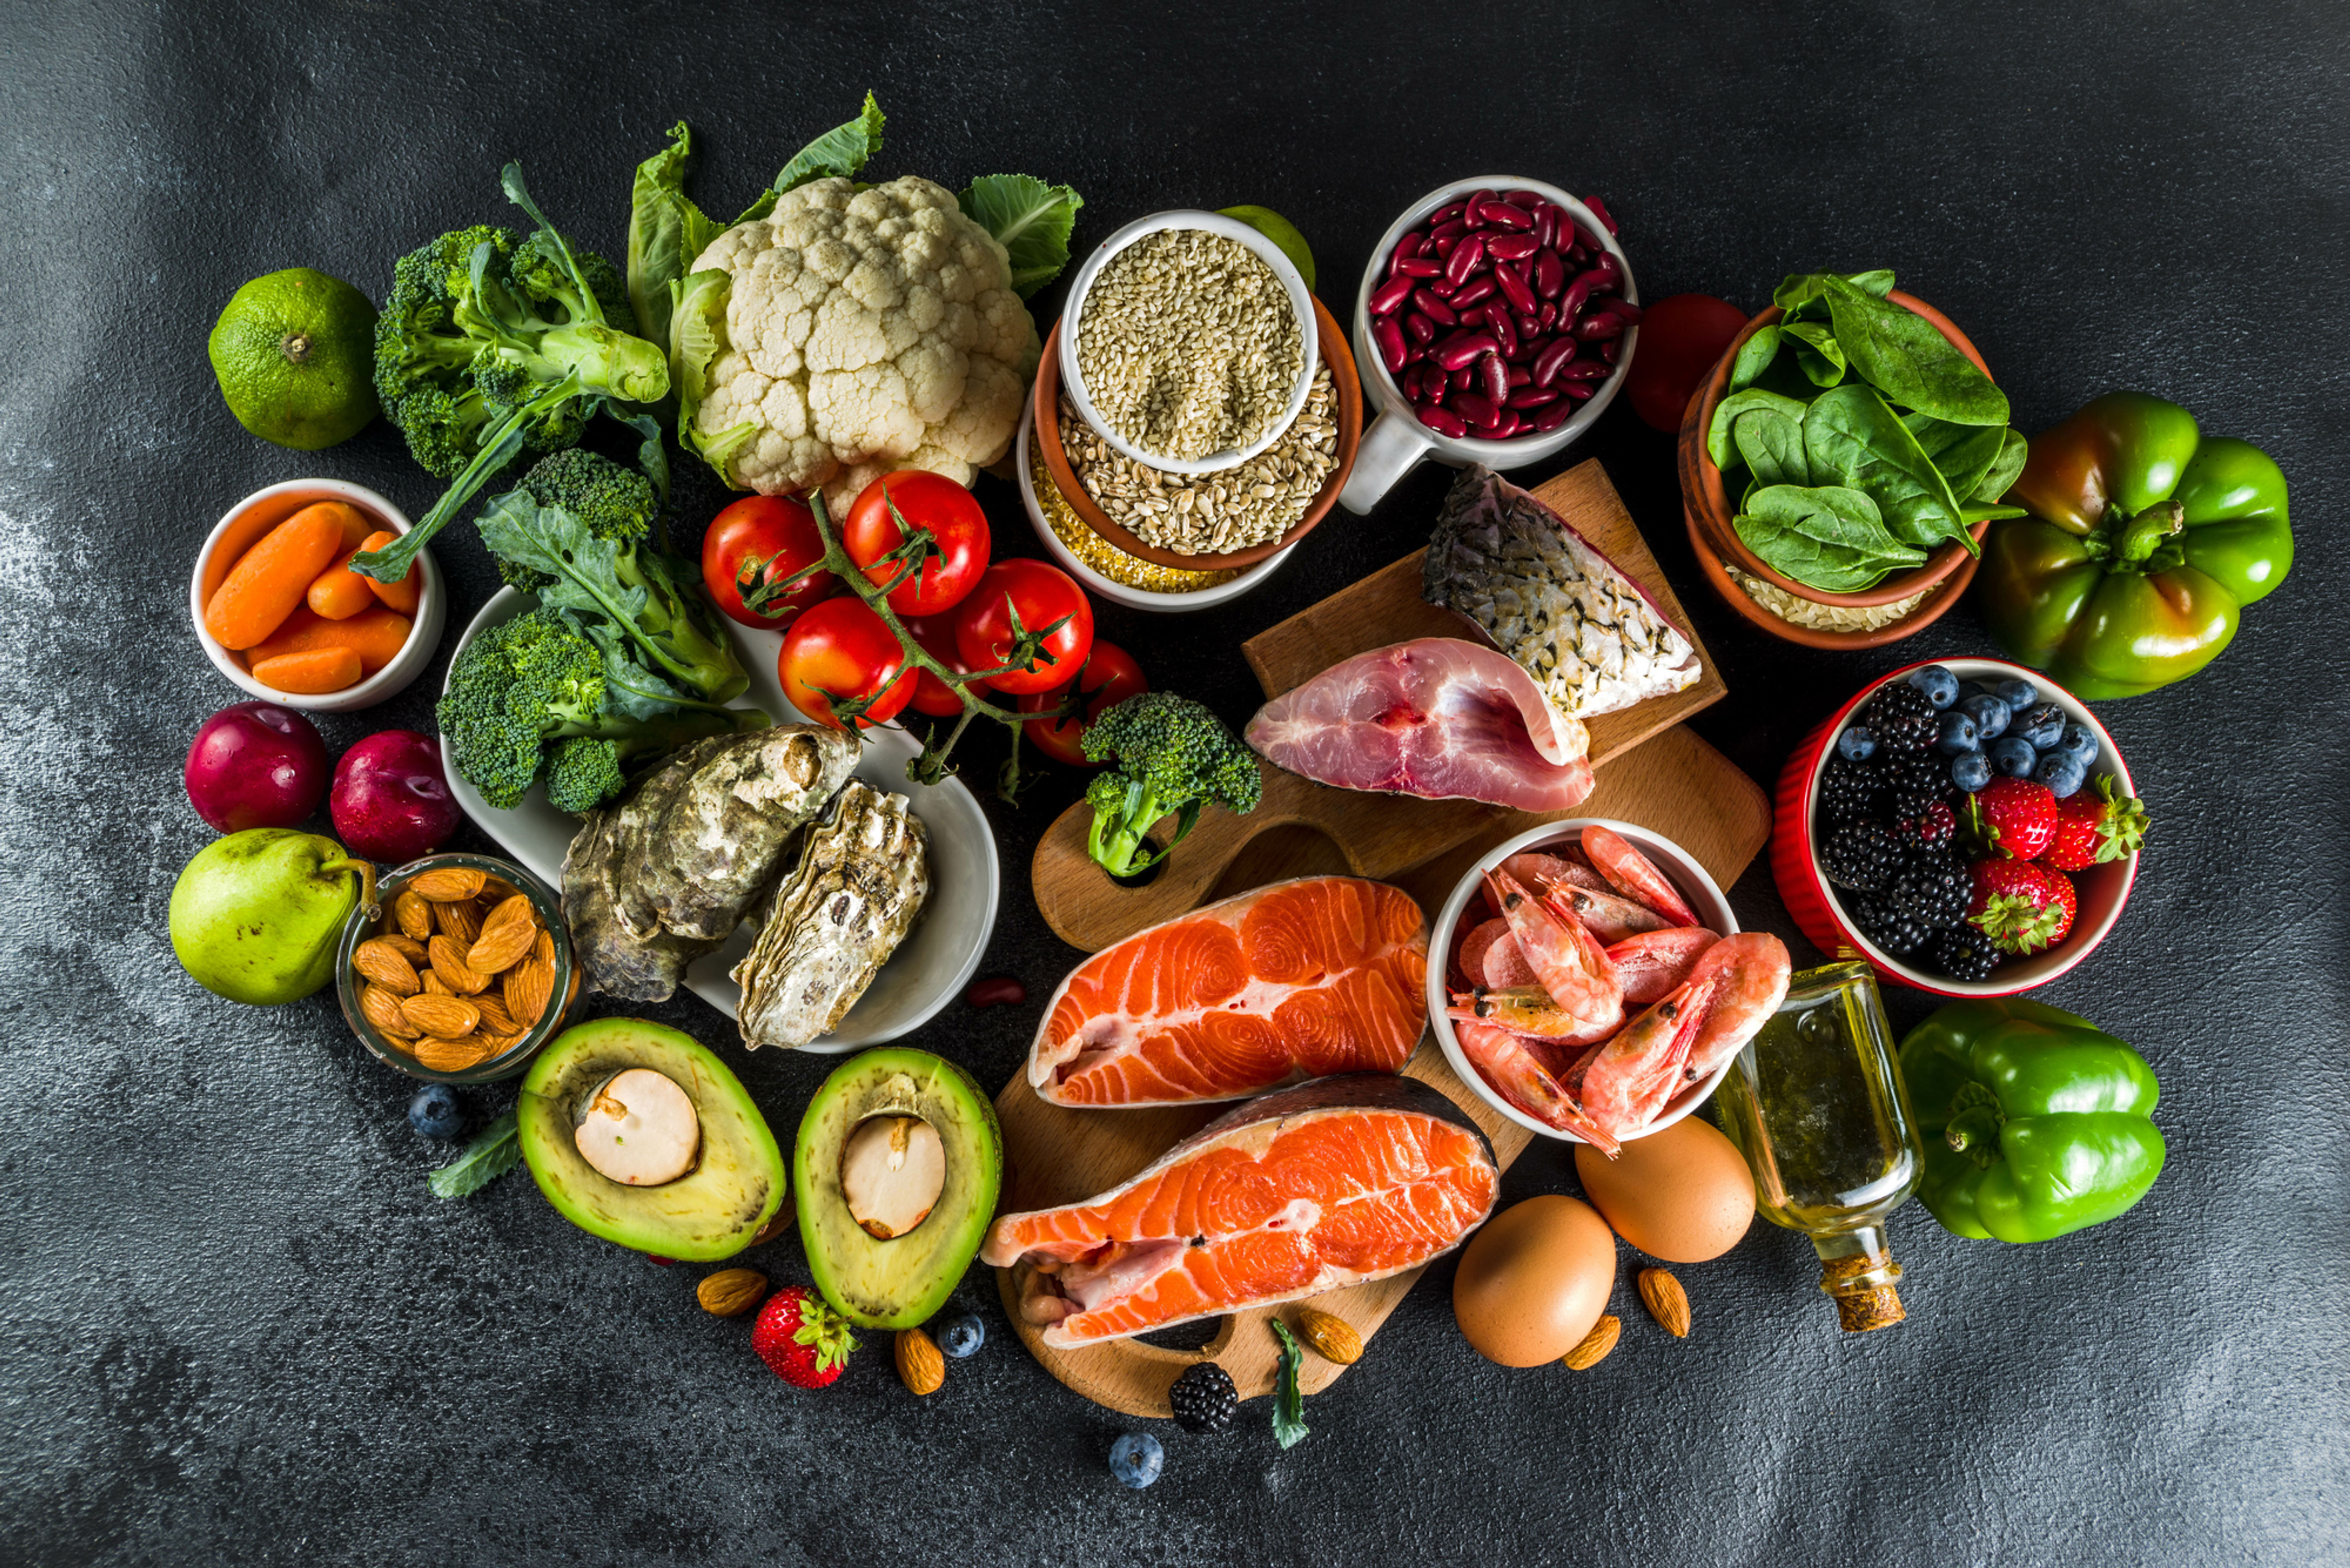 Food Choices to Optimize Mental Clarity